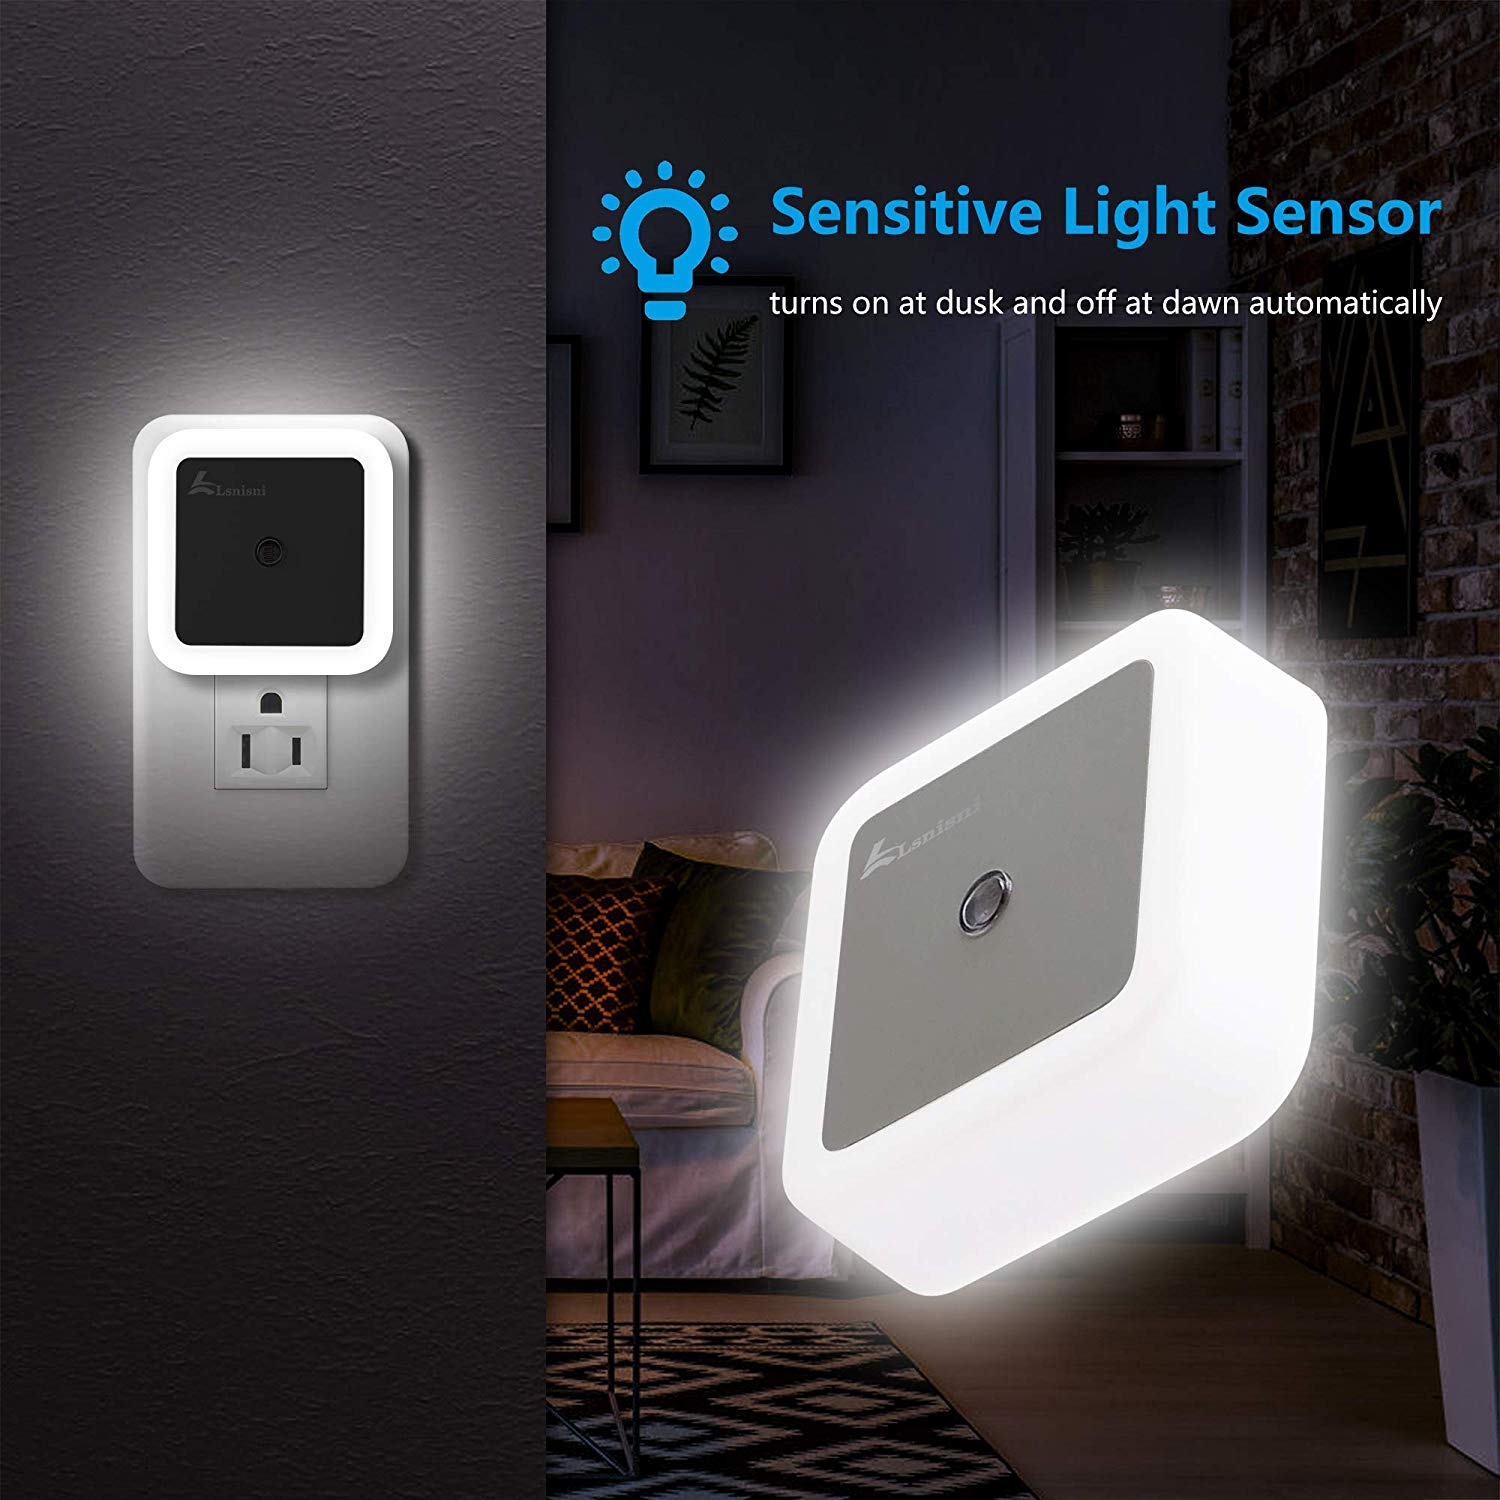 LED Night Light, Lsnisni(6 PCS) Night Light Plug in Wall with Dusk to Dawn Smart Sensor